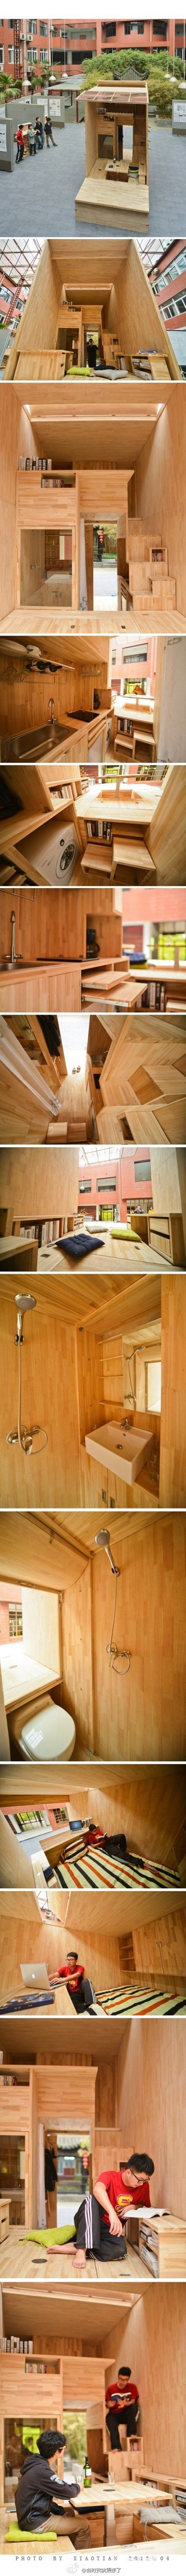 Tiny house - student architect in China constructs his own 75 ft² wooden house complete with kitchen, bathroom, laundry room, and even a patio. - Imgur